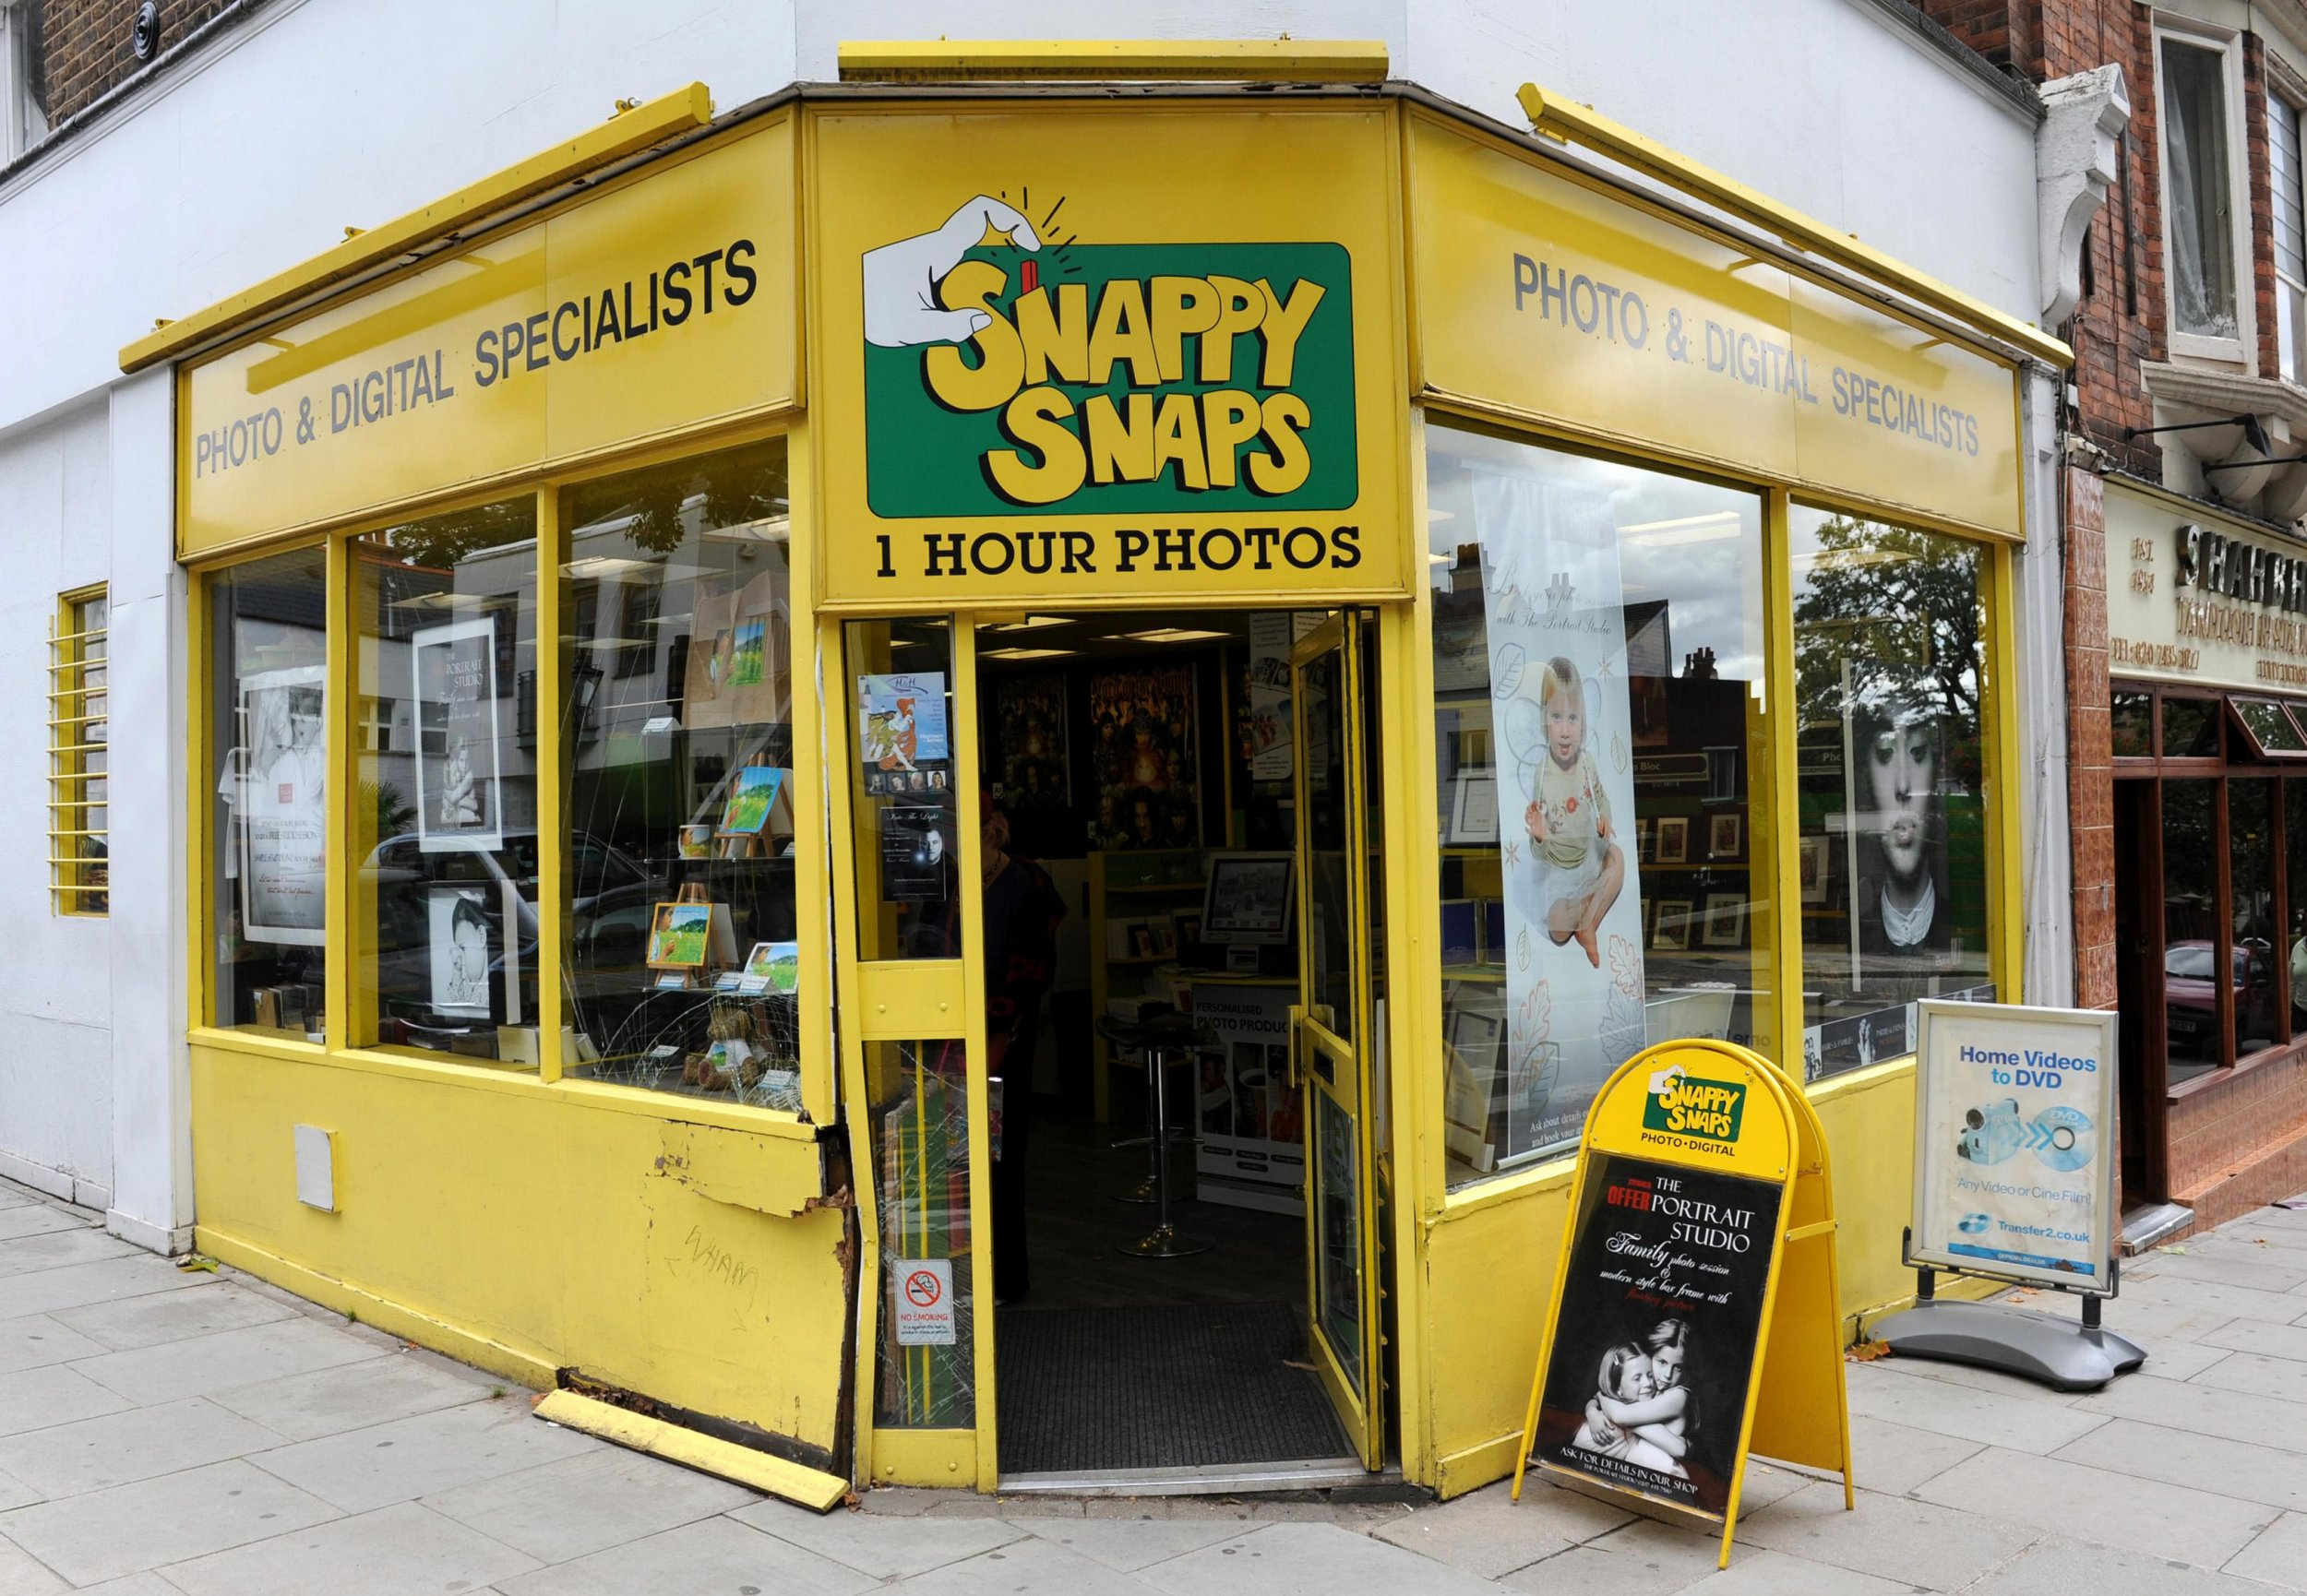 The Snappy Snaps store in Hampstead, north London, which George Michael crashed into in his Range Rover in July. PRESS ASSOCIATION Photo. Picture date: Tuesday August 24, 2010. See PA story COURTS Michael. Photo credit should read: Stefan Rousseau/PA Wire